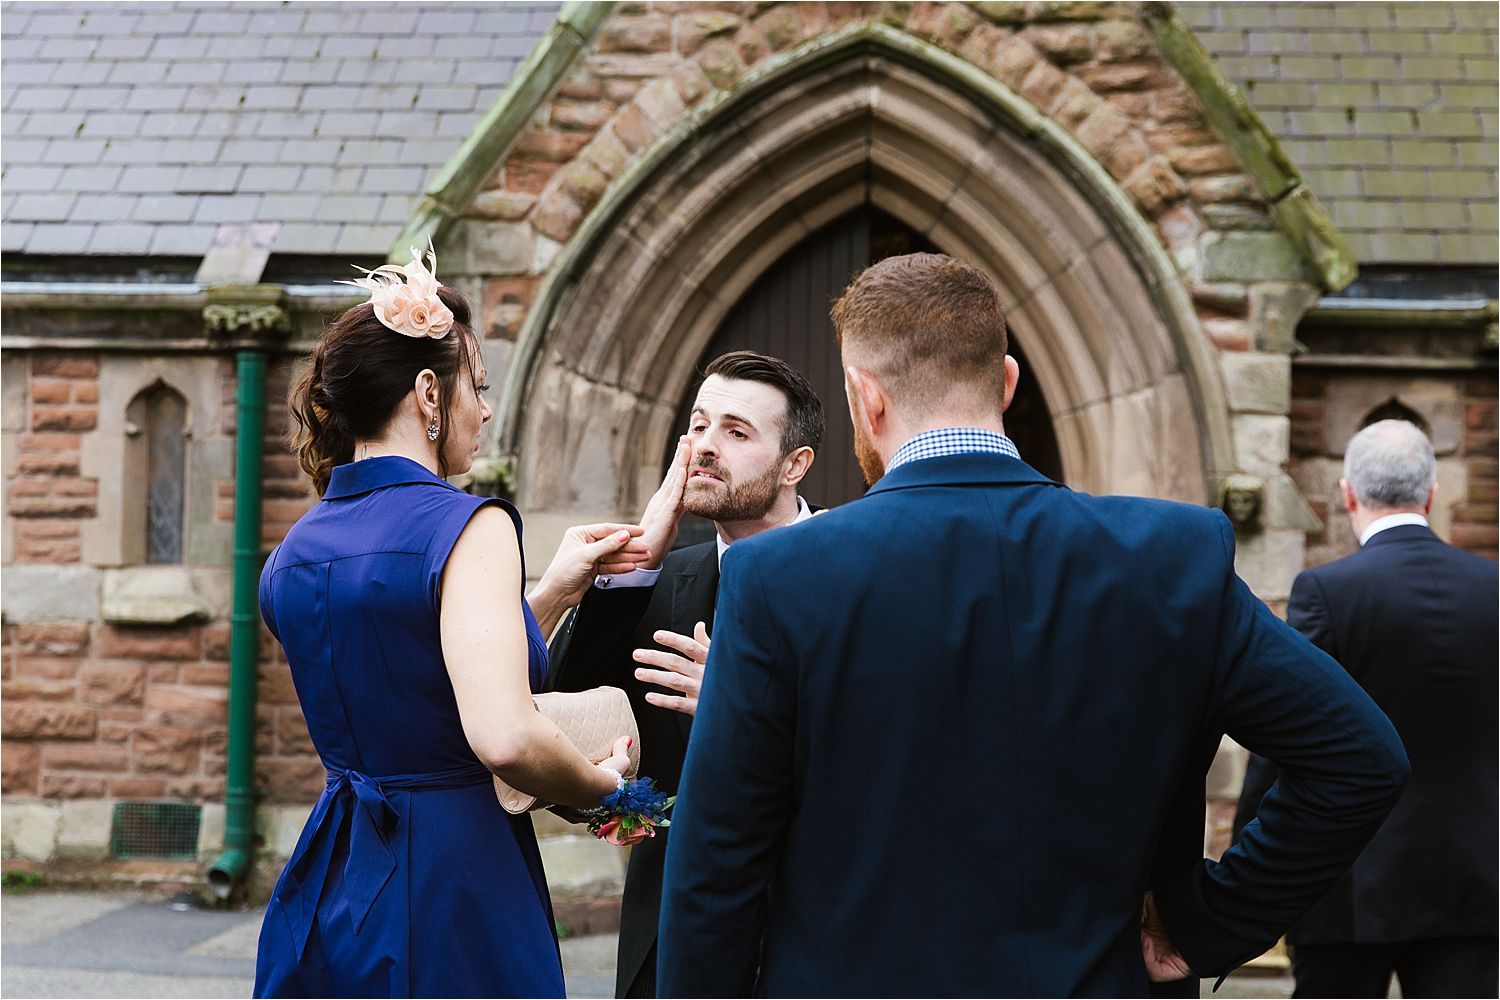 Bridegroom wiping lipstick off cheek outside church before Cumbrian wedding ceremony